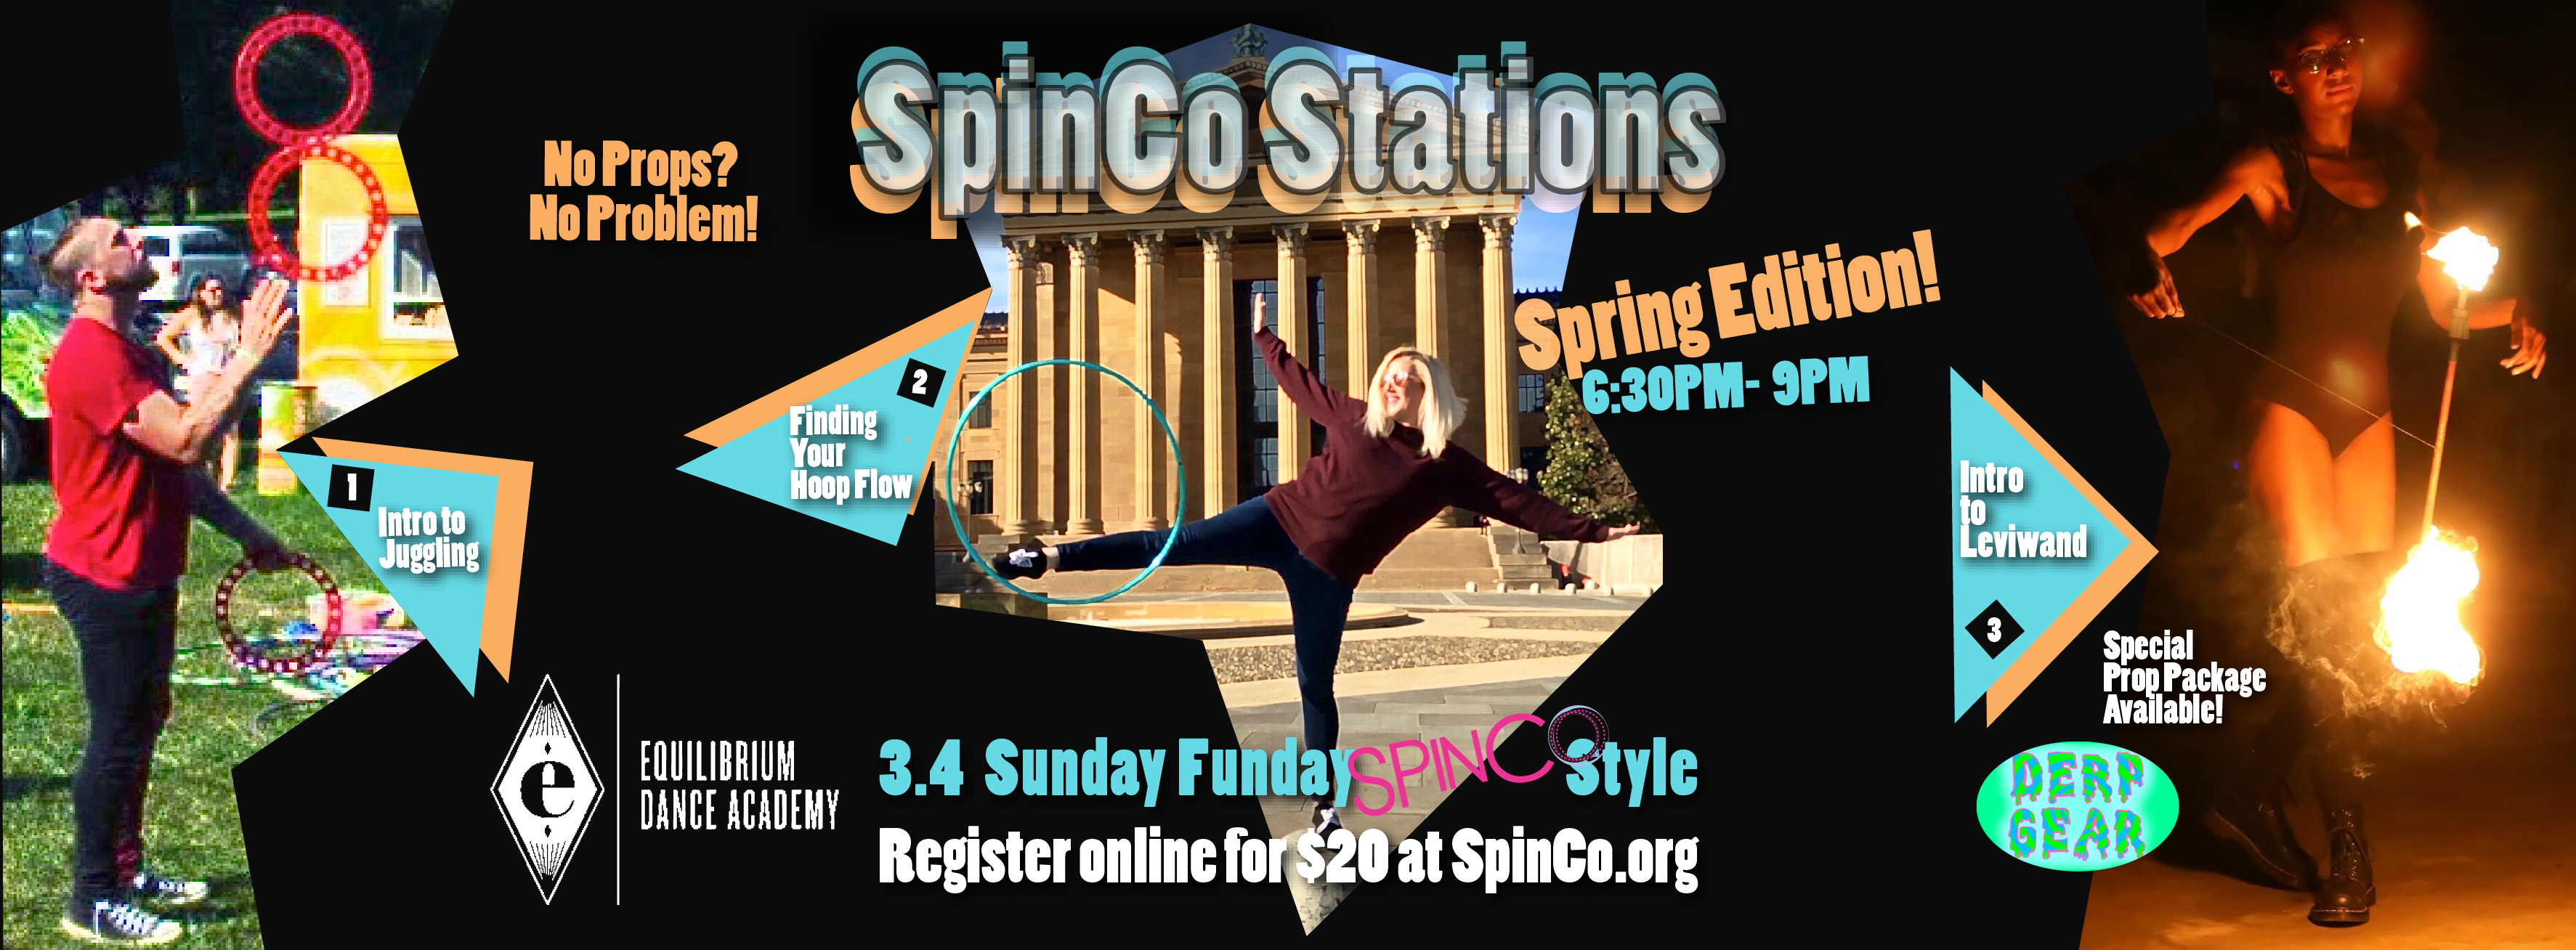 Spin Co Stations March 2018 01